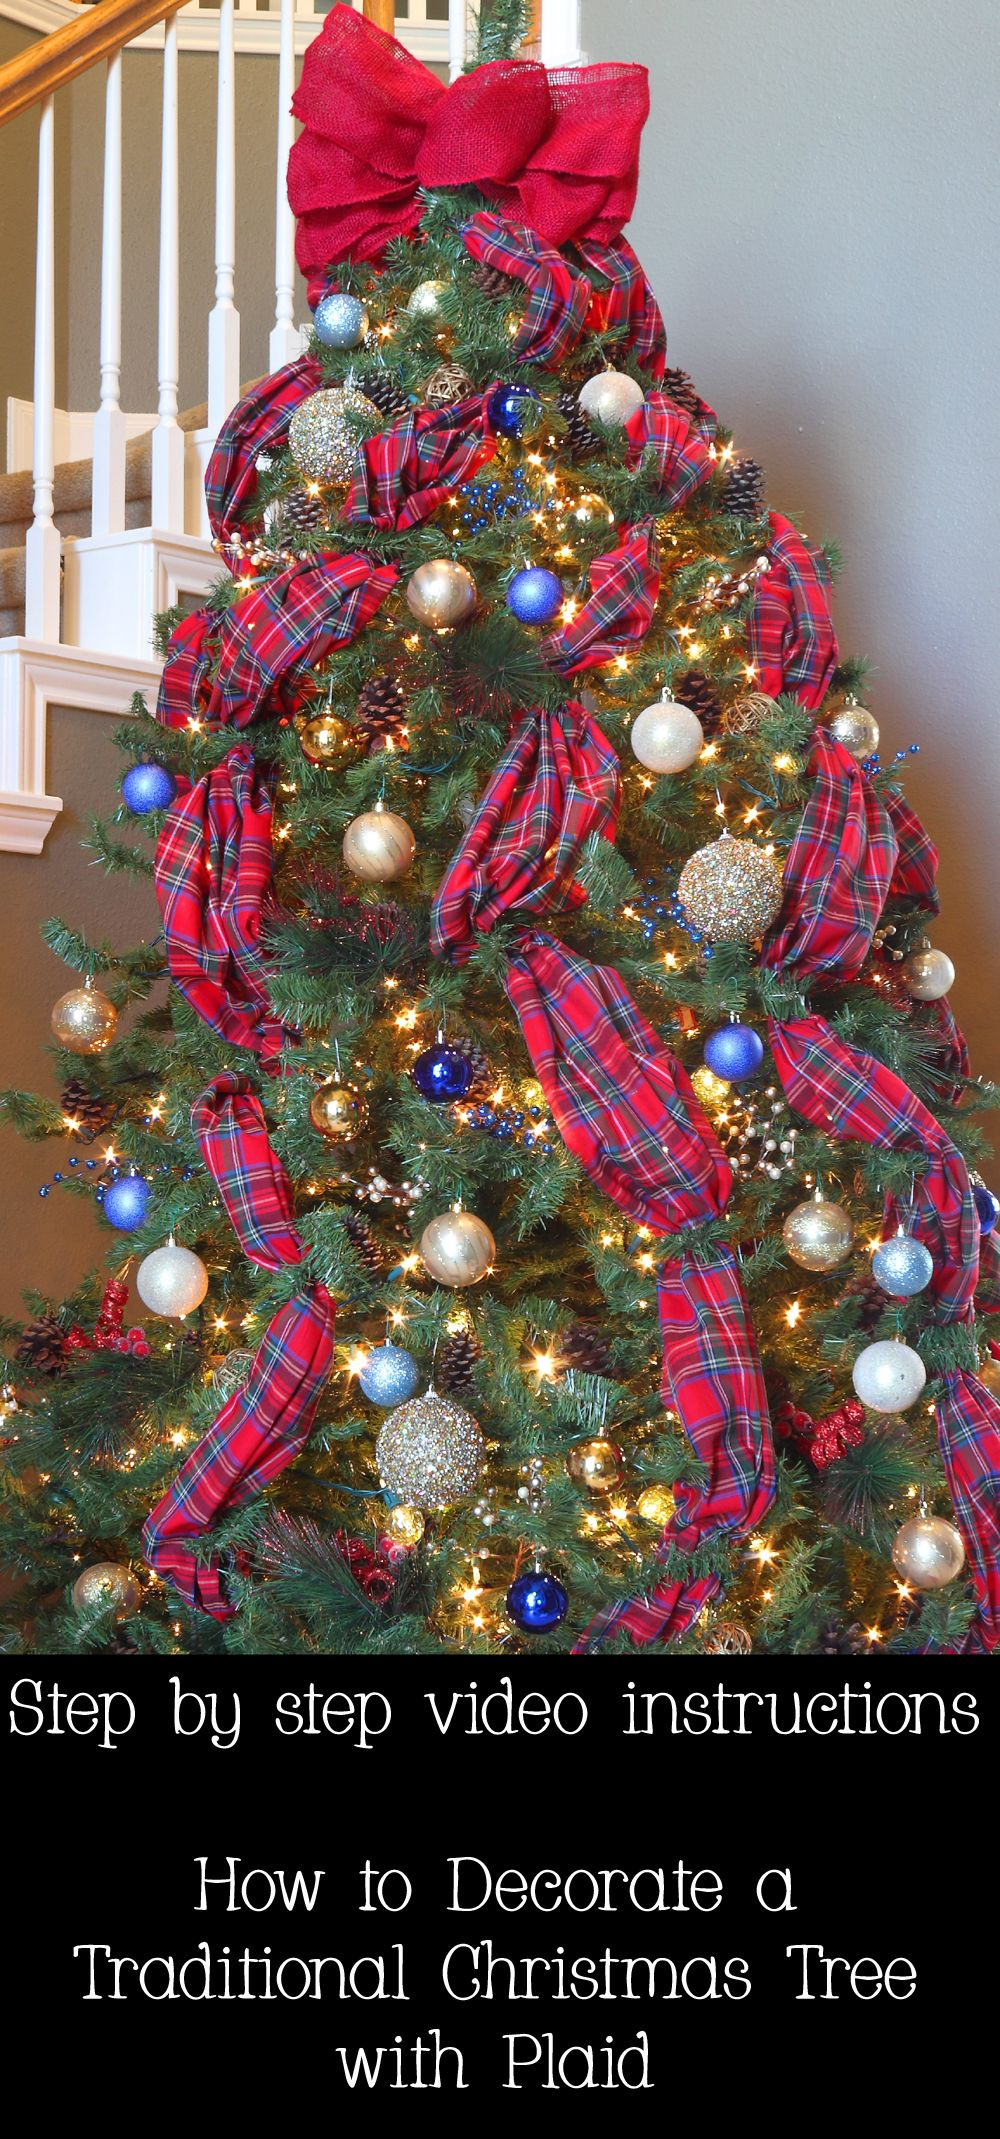 Step By Step Video Instructions How To Decorate A Traditional Christmas Tree With Plaid Gorgeo Traditional Christmas Tree Christmas Tree Red Christmas Tree